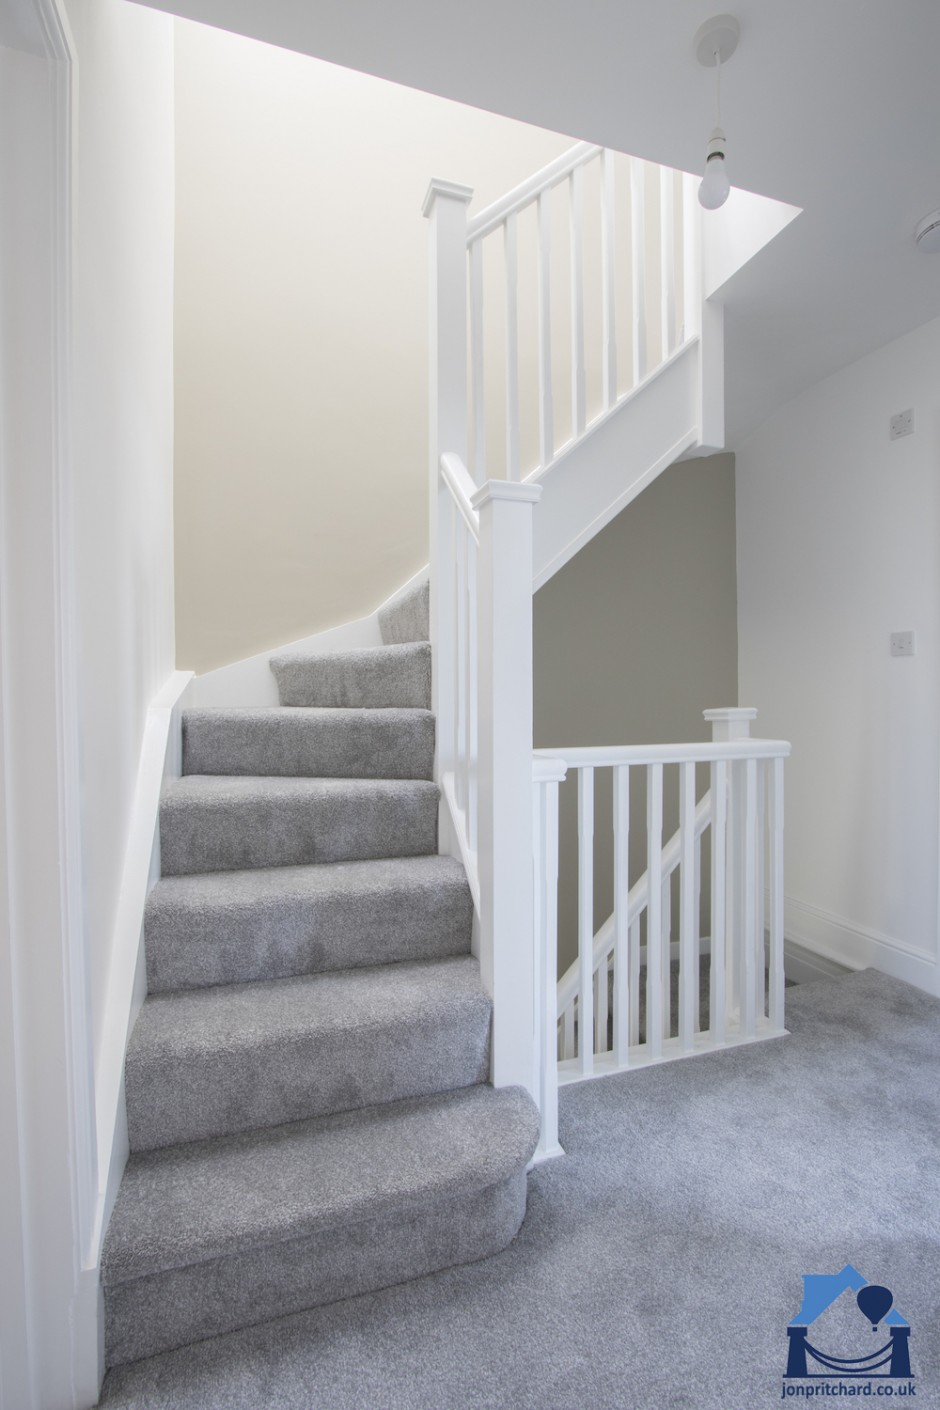 Loft conversion staircase, Full size, Light grey carpet and white painted modern square spindles, handrails etc